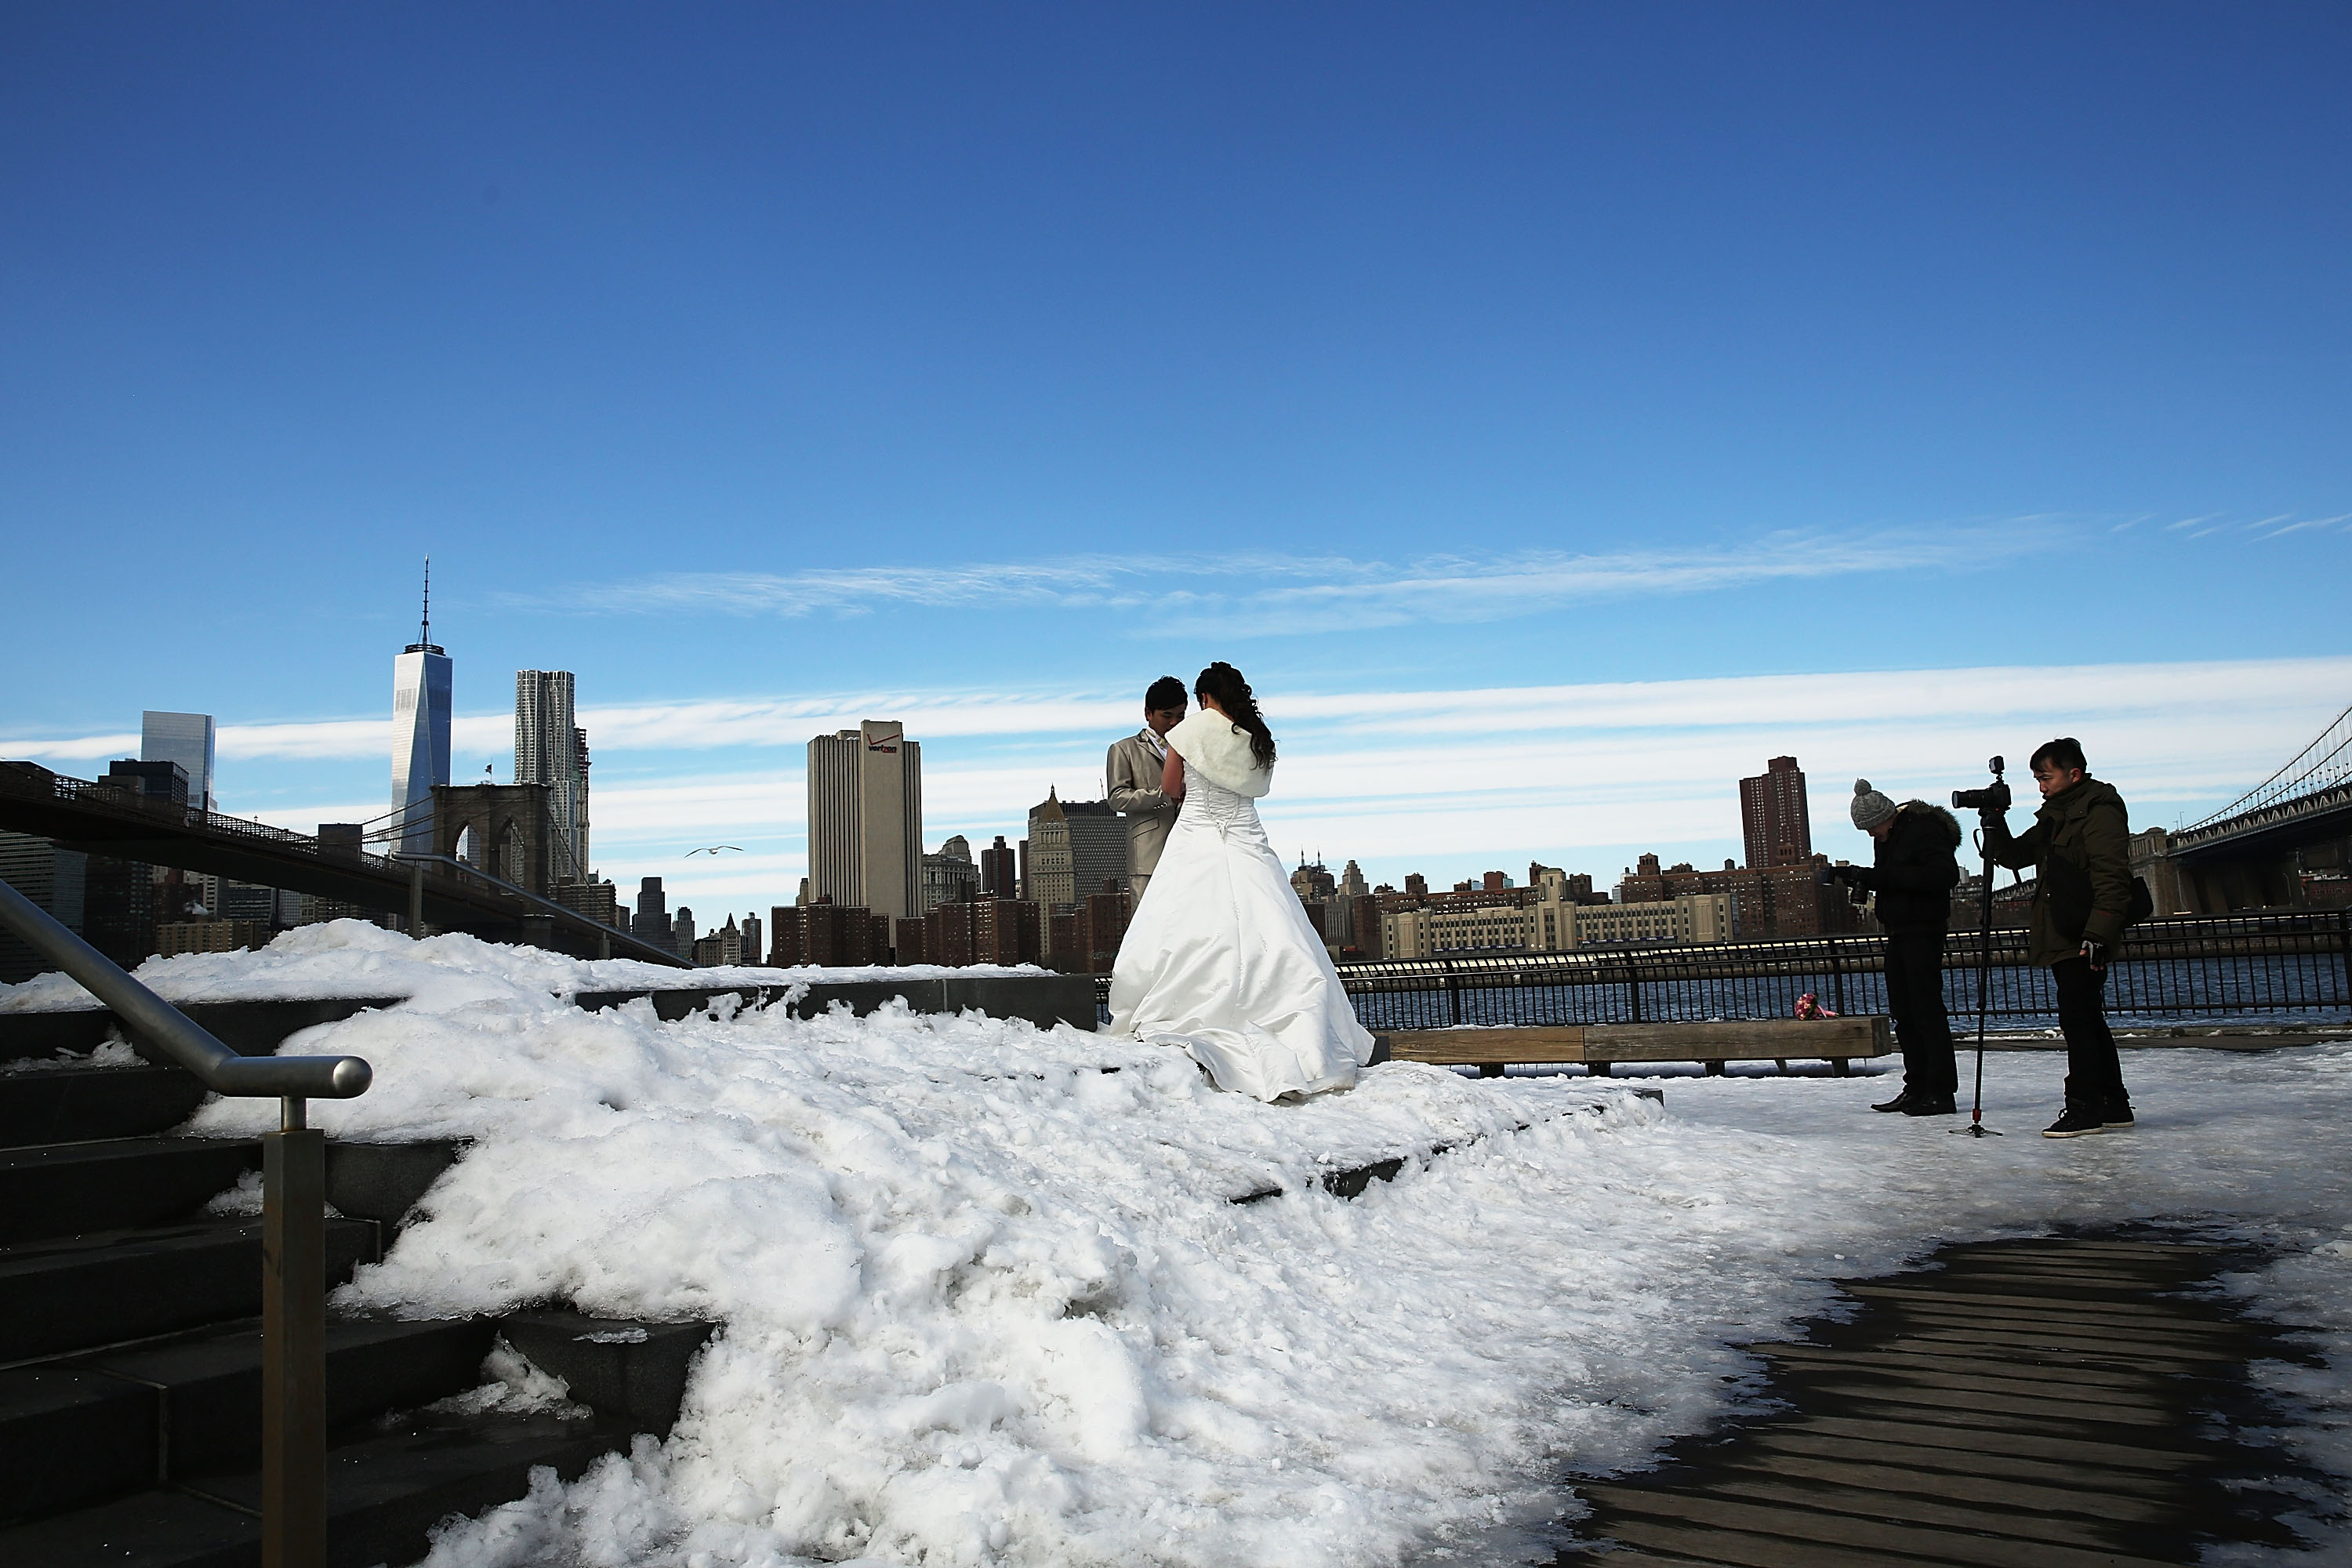 Frigidly Cold Weather Continues To Chill New York City